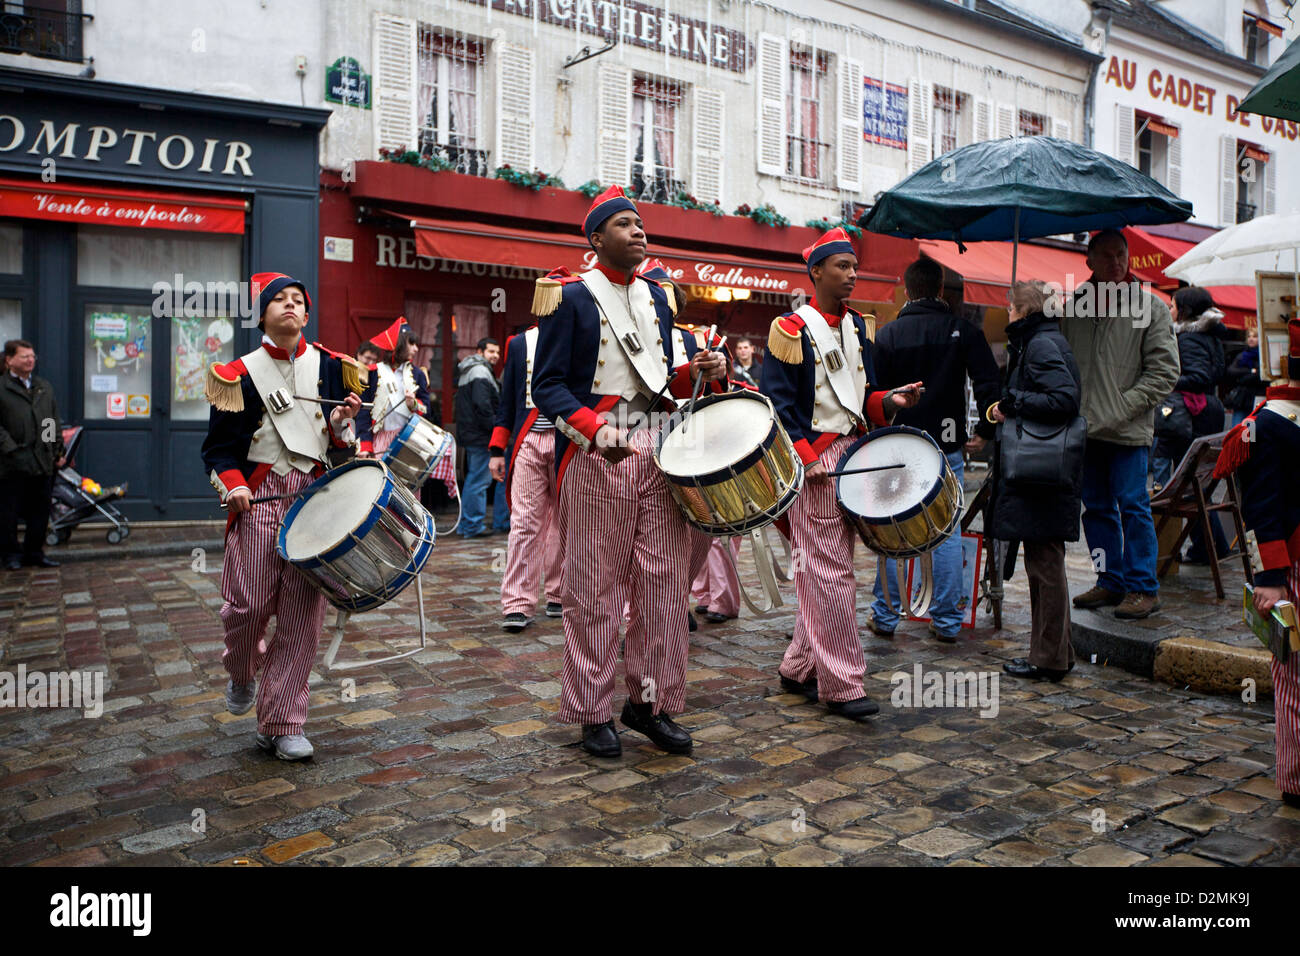 Young men march with drums in traditional costumes during a performance in the square on top of Montmartre, in Paris, Stock Photo